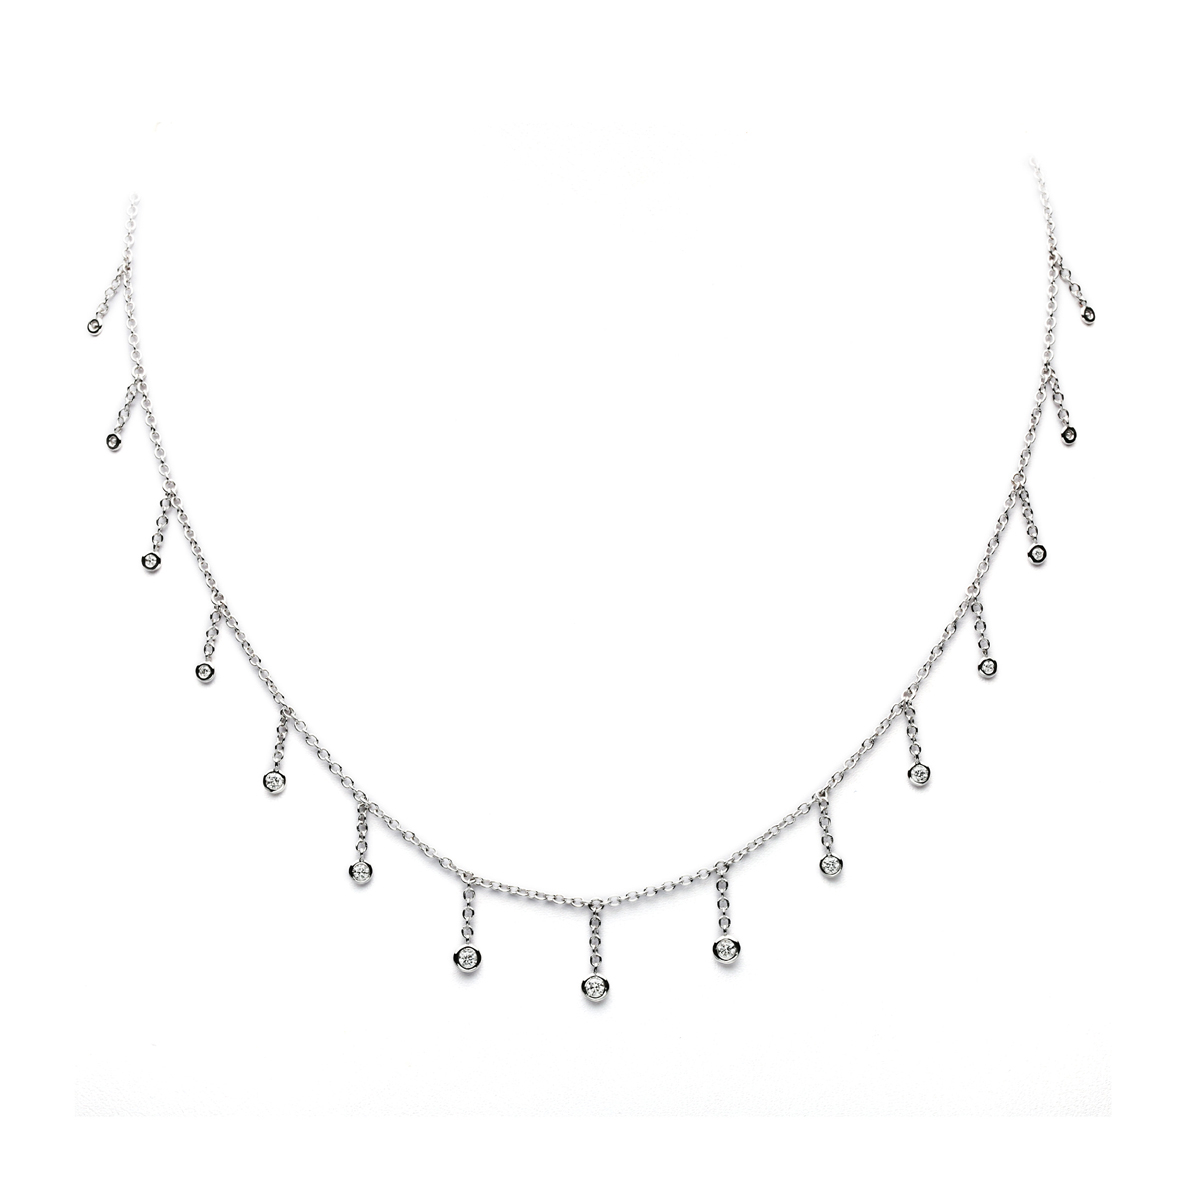 White Gold Necklace with Fluctuating Round Diamonds